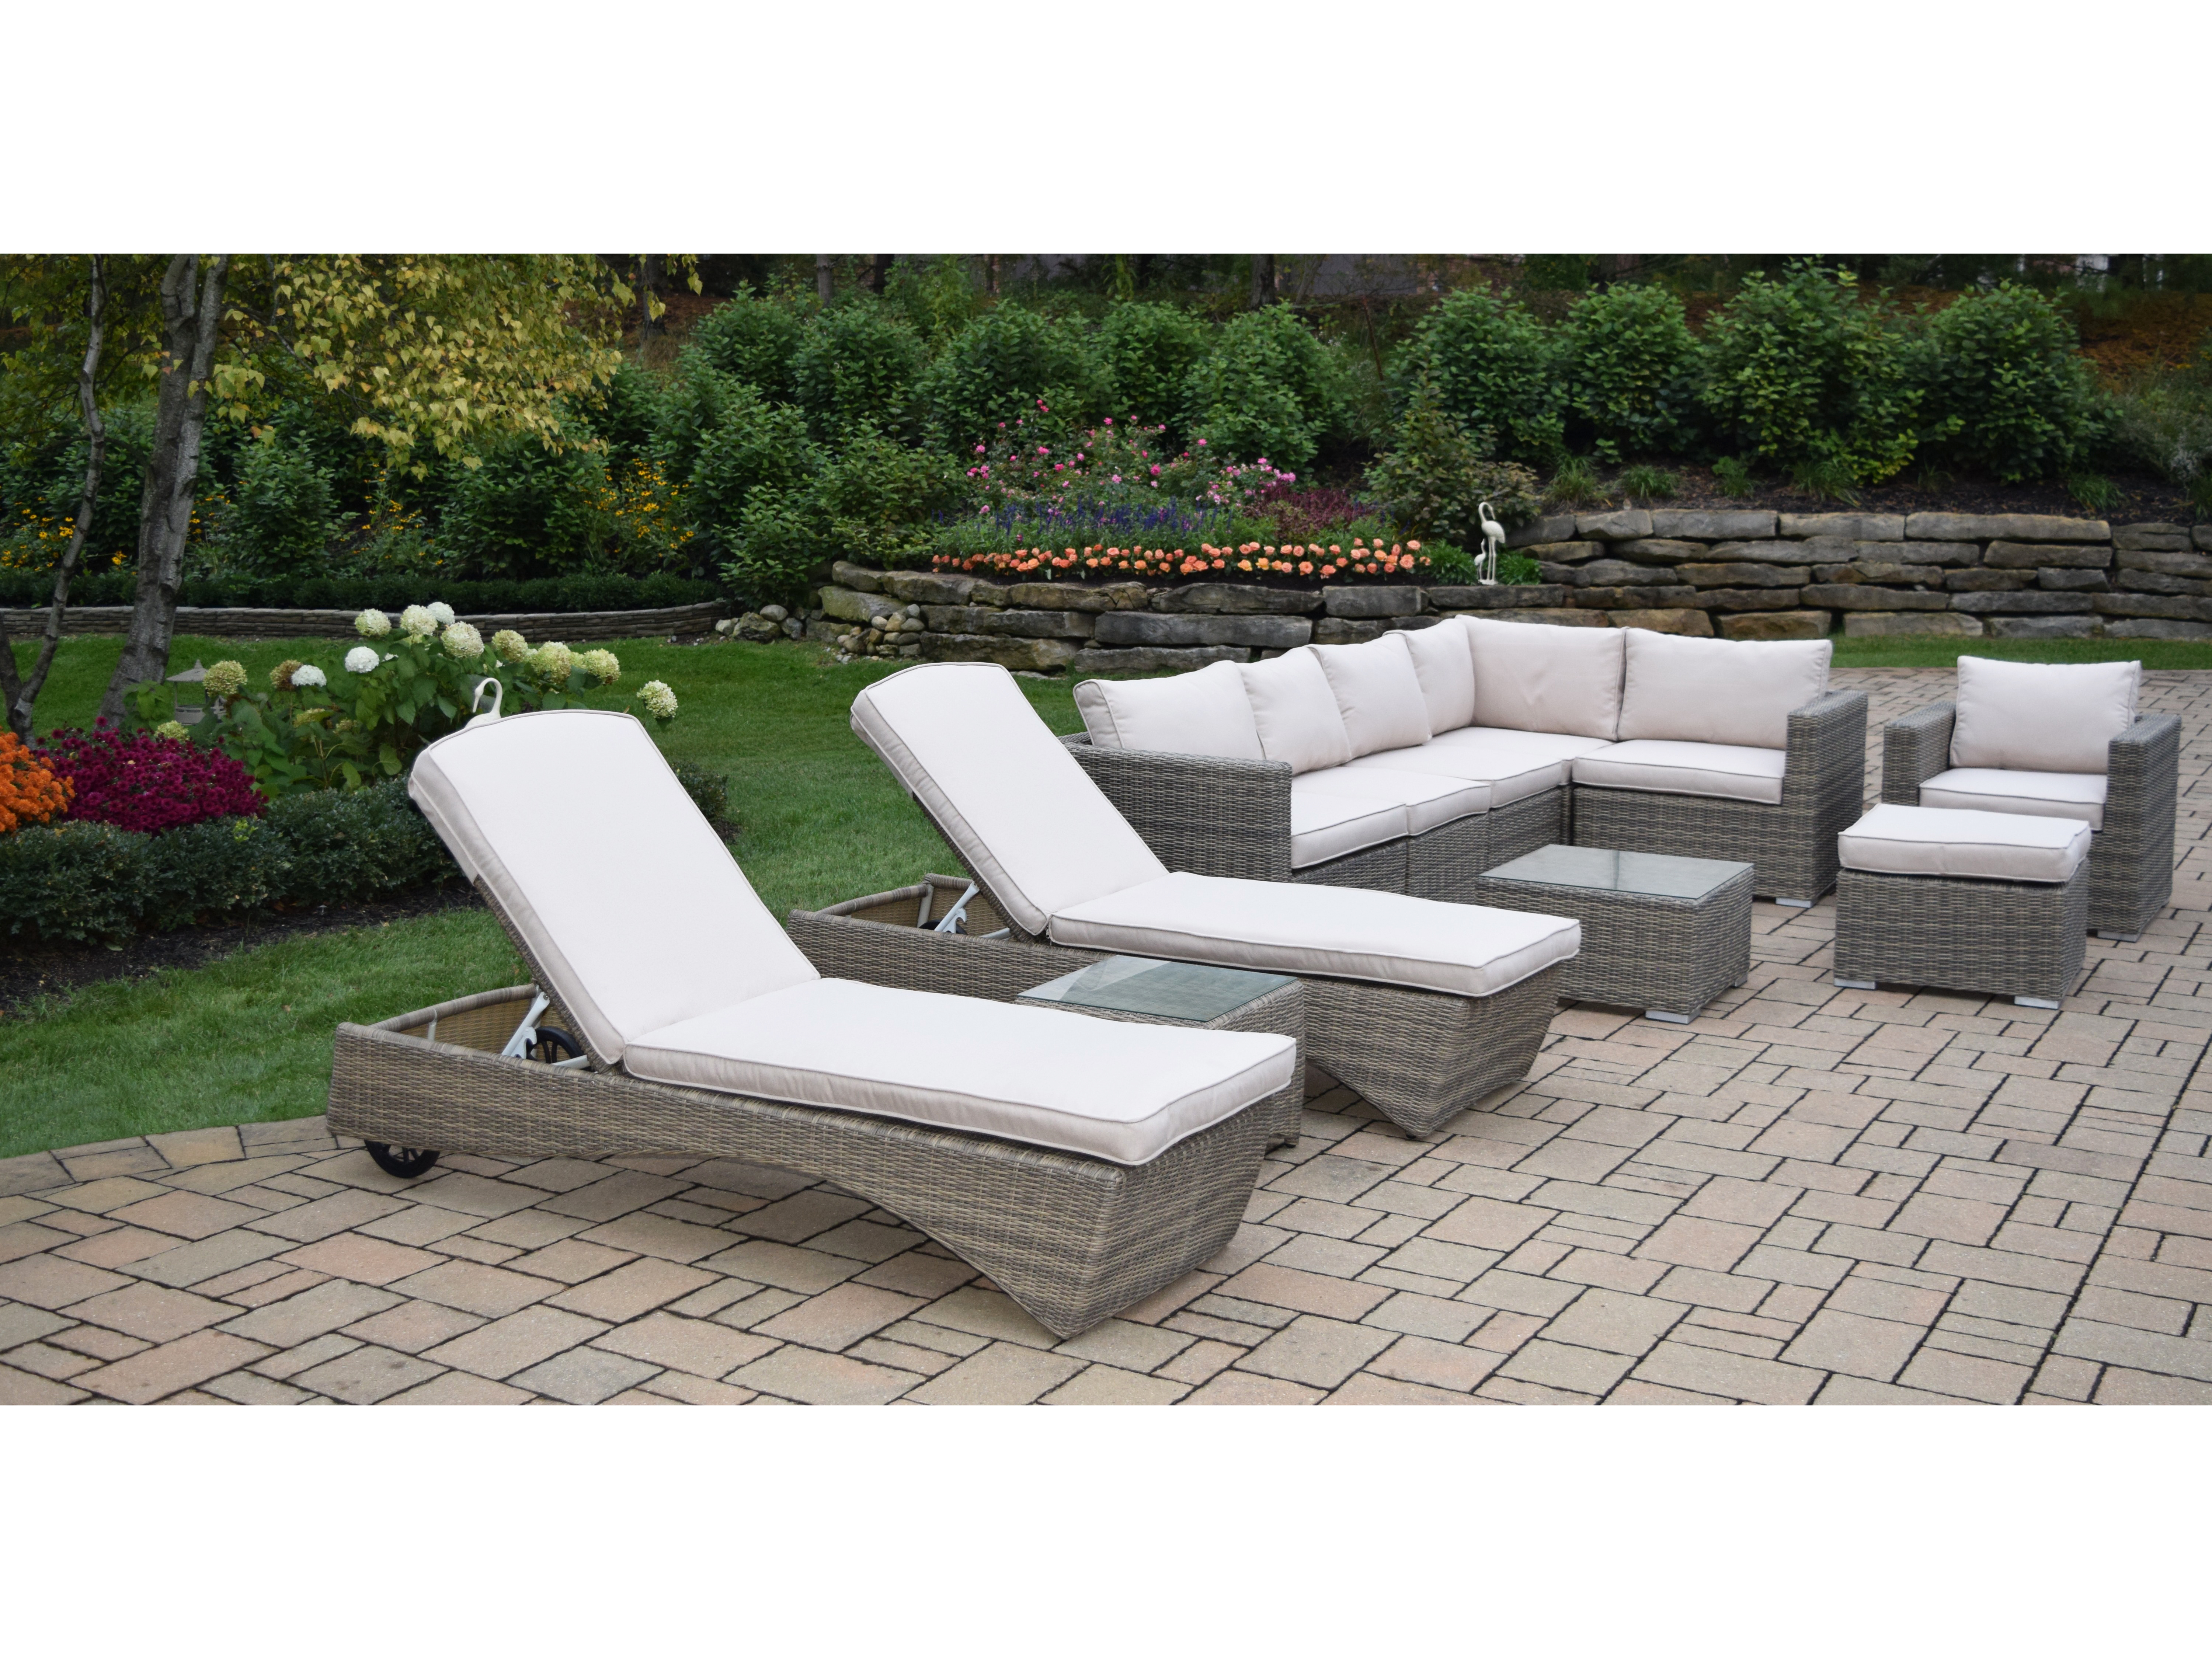 Cool Oakland Living Borneo Modular All Weather Resin Wicker Sectional Deep Seat Zipper Cushioned 11 Pcs Sofa Set Including A Club Chair Ottoman Coffee Bralicious Painted Fabric Chair Ideas Braliciousco